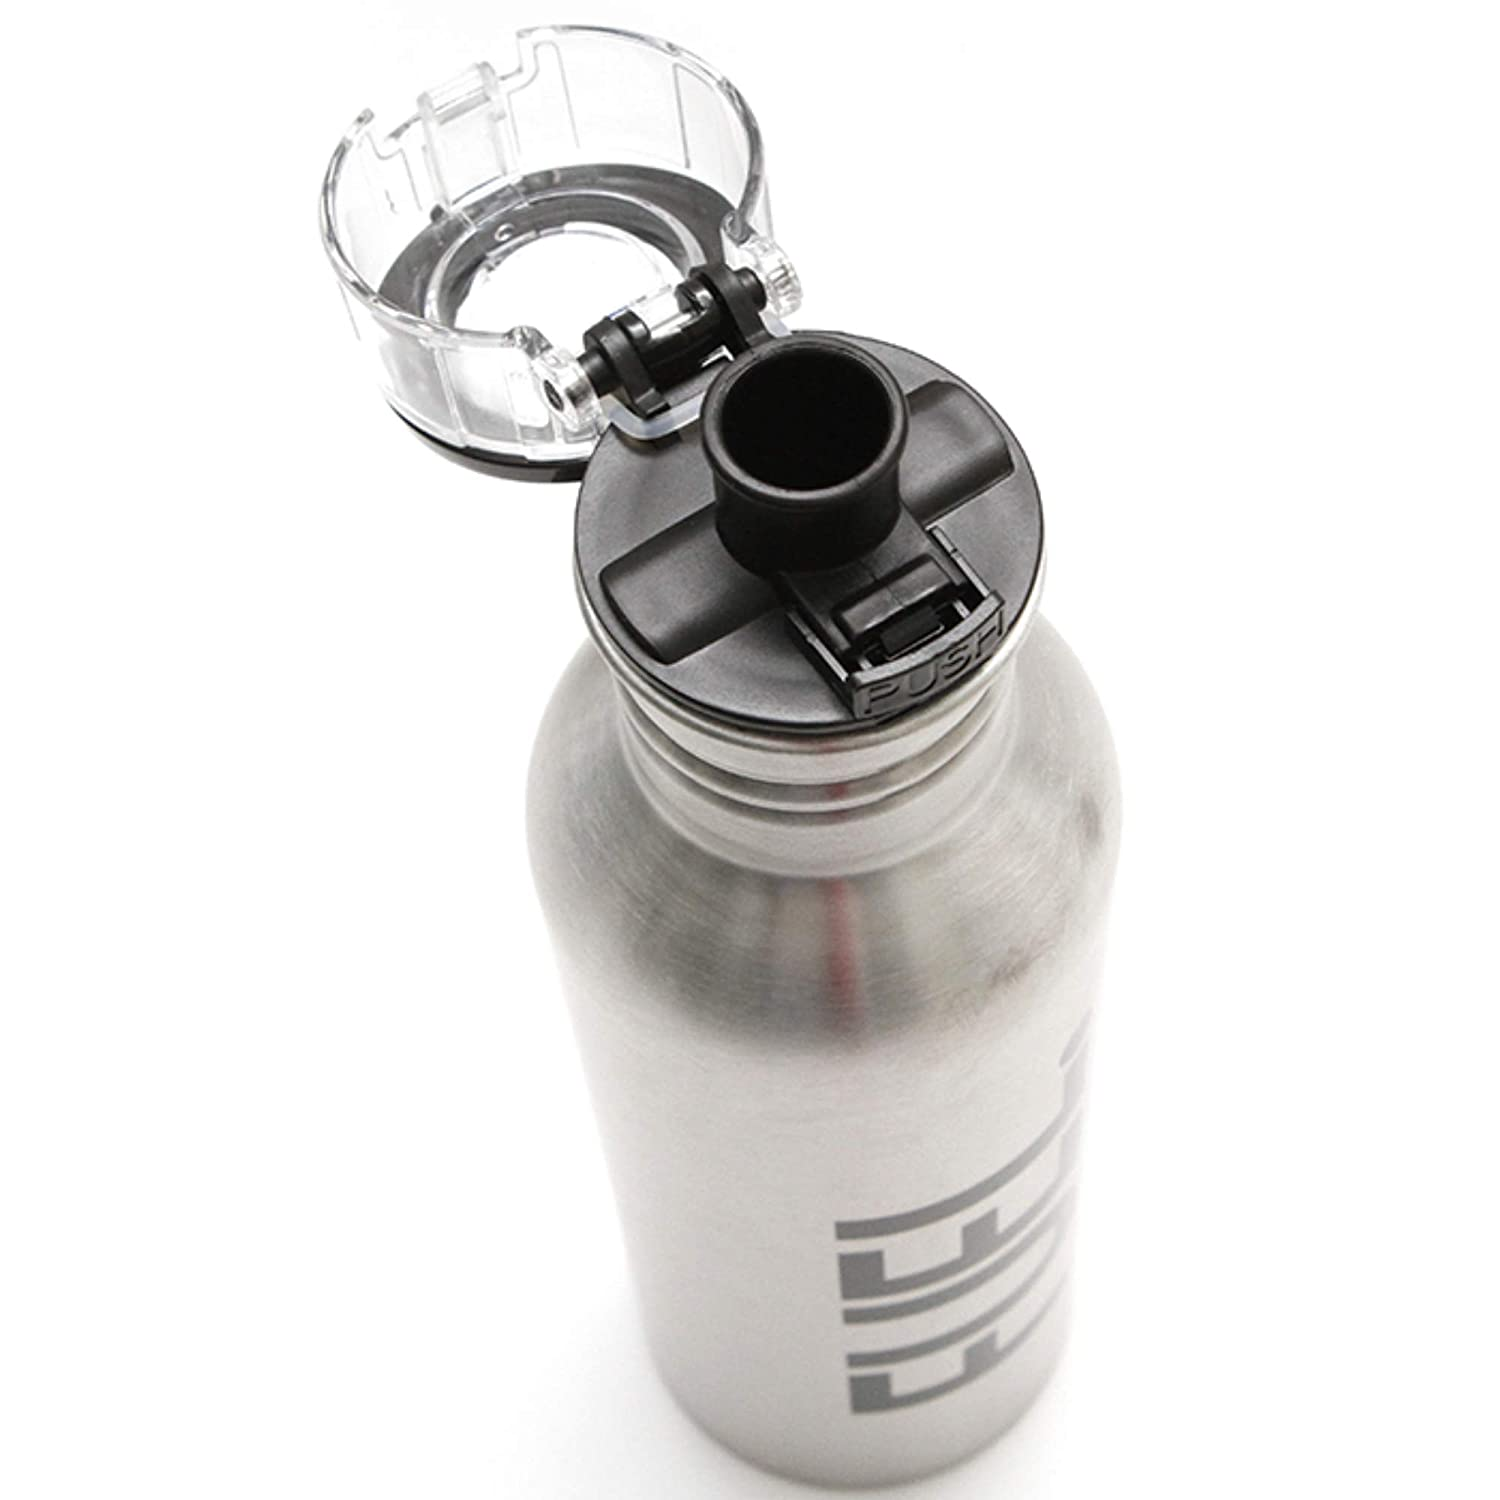 Teacher Peach Stainless Steel Water Bottle Insulated Metal Design with Removable Flip Top Cap